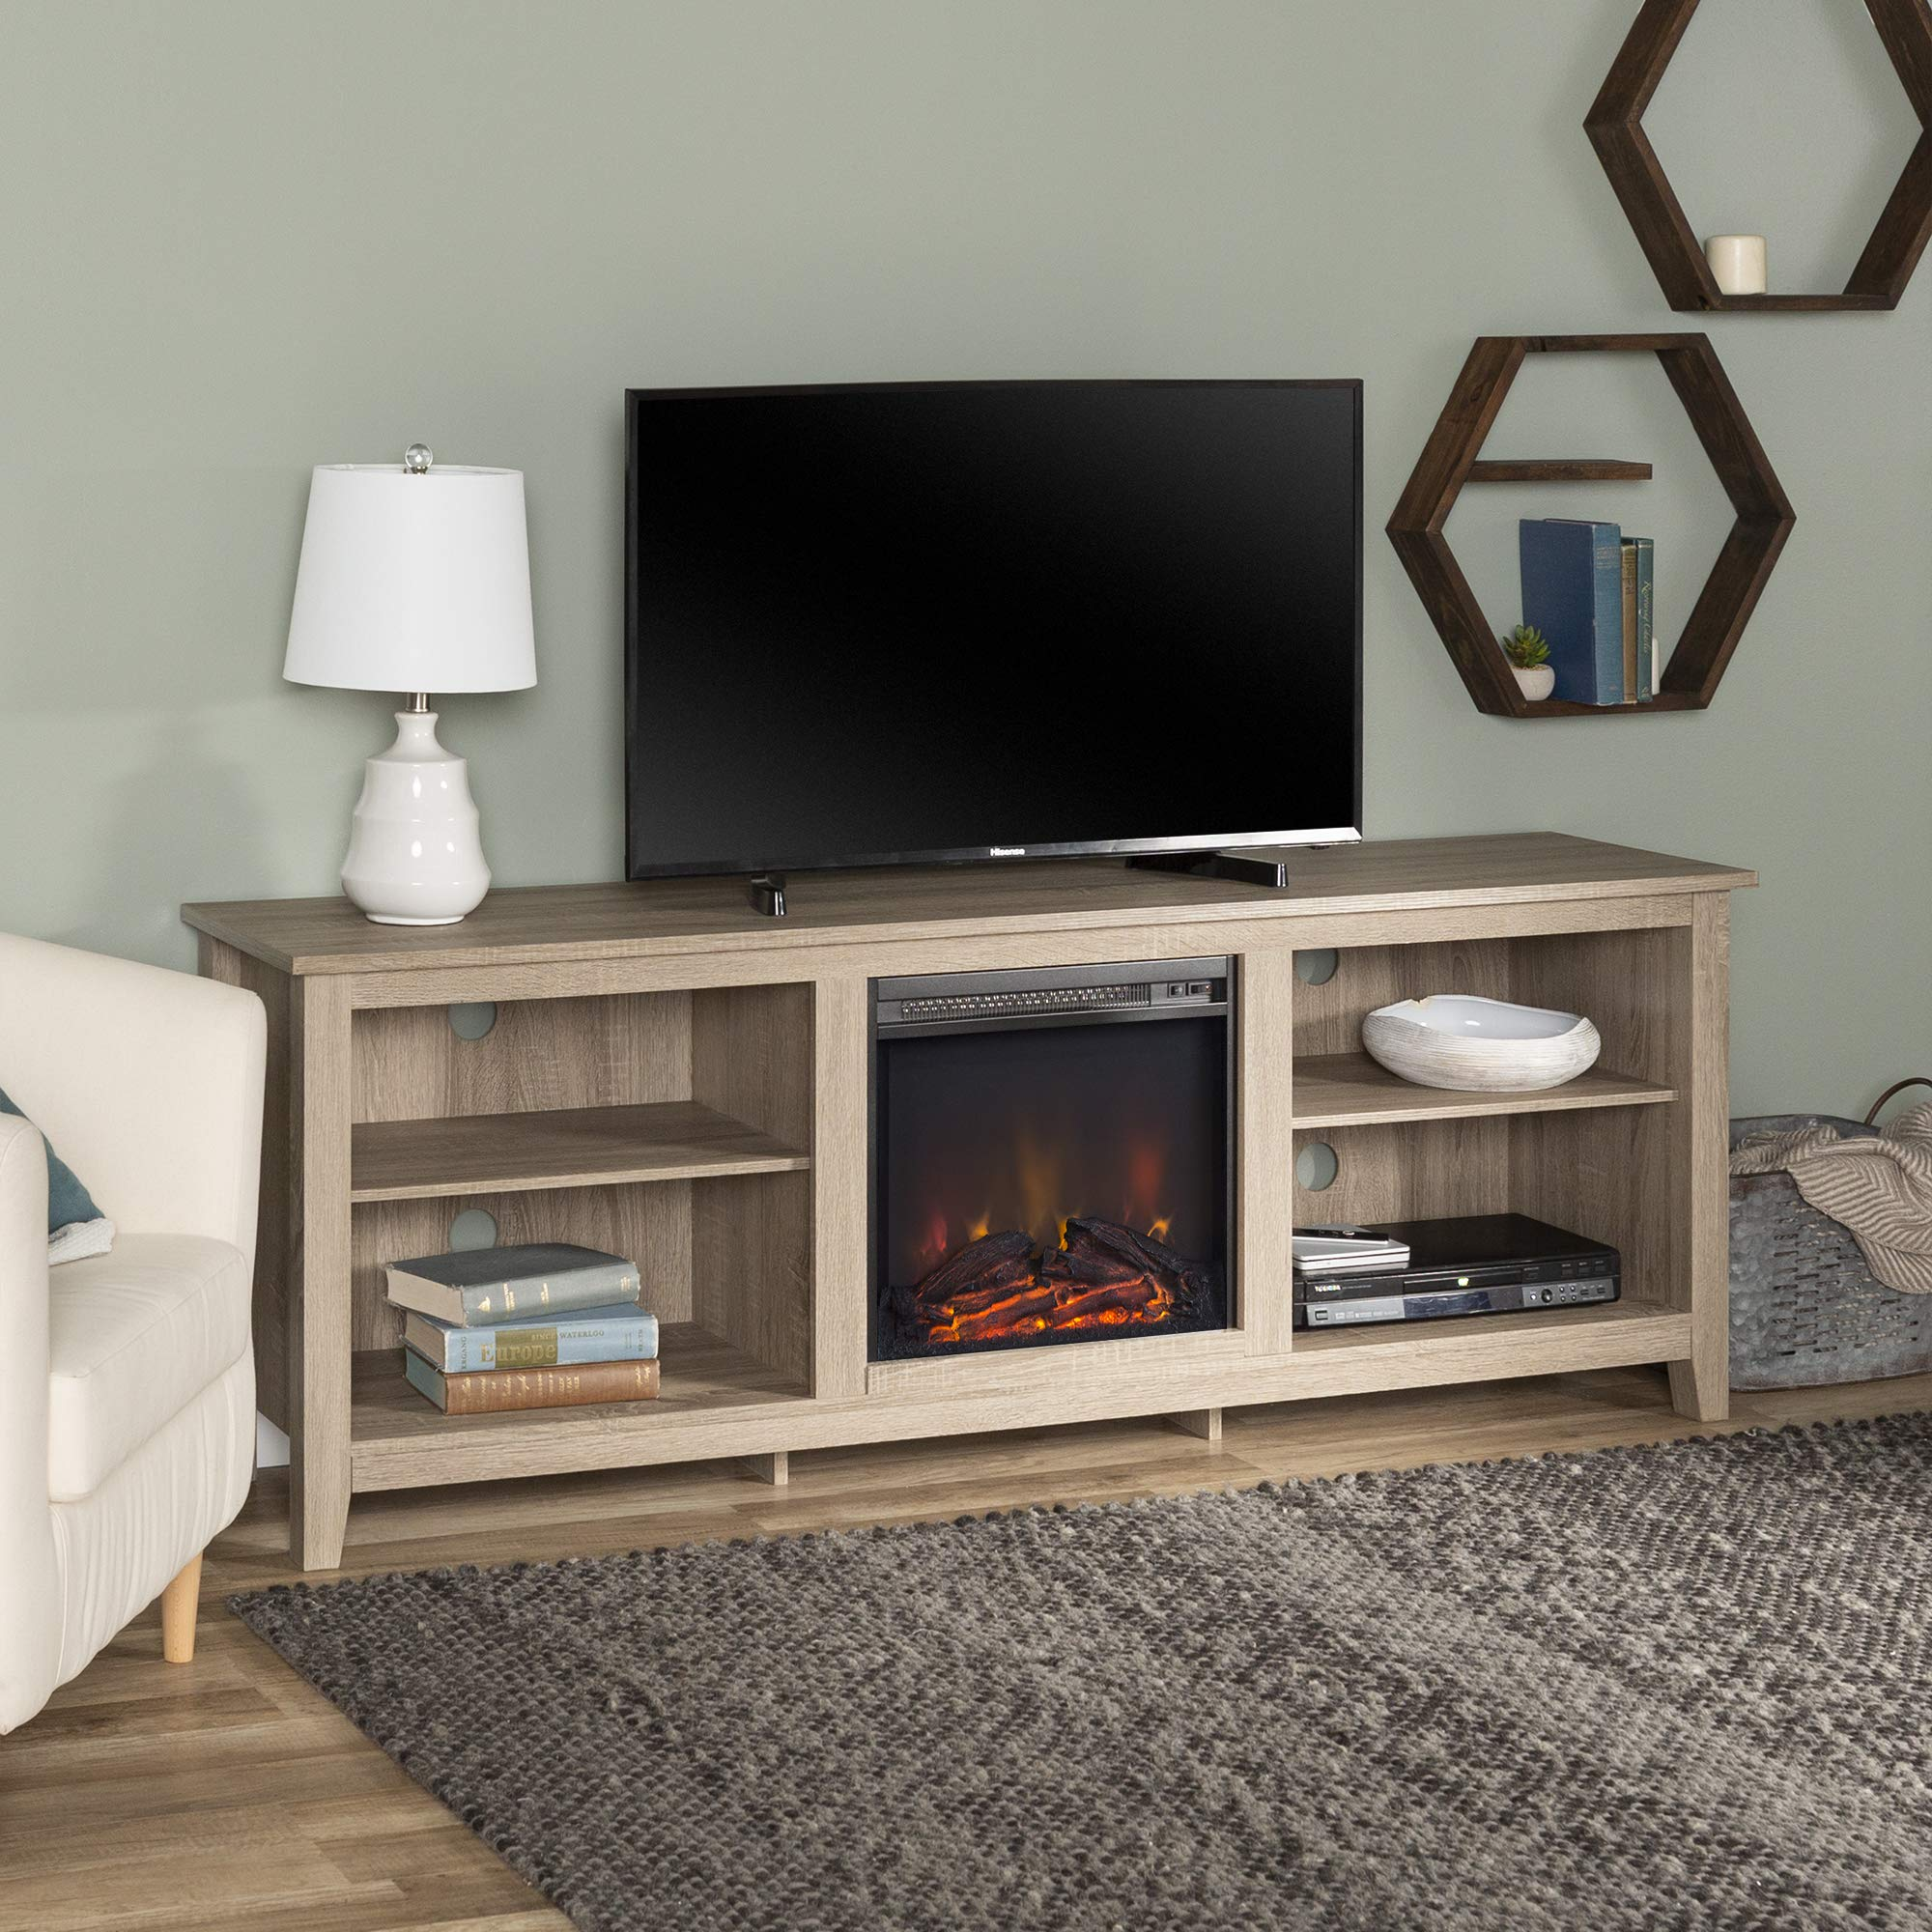 Walker Edison Wren Classic 4 Cubby Fireplace TV Stand for TVs up to 80 Inches, 70 Inch, Driftwood